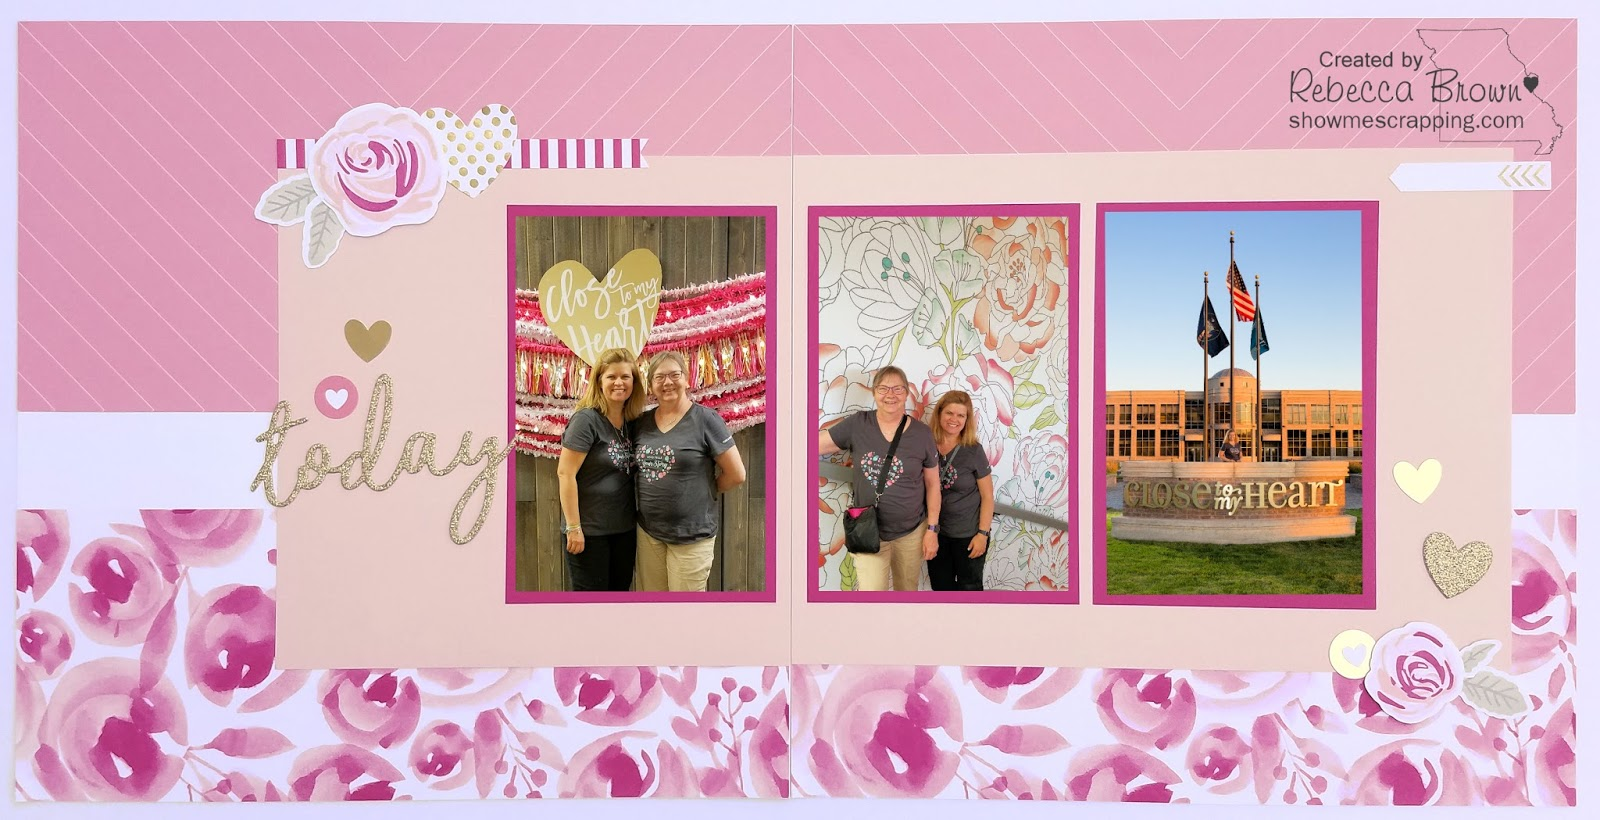 Show me scrapping blog a layout to remember a special today in in the first picture my friend faye and i are posing in front of a nice photo opp they had set up soon after we came into the building kristyandbryce Image collections